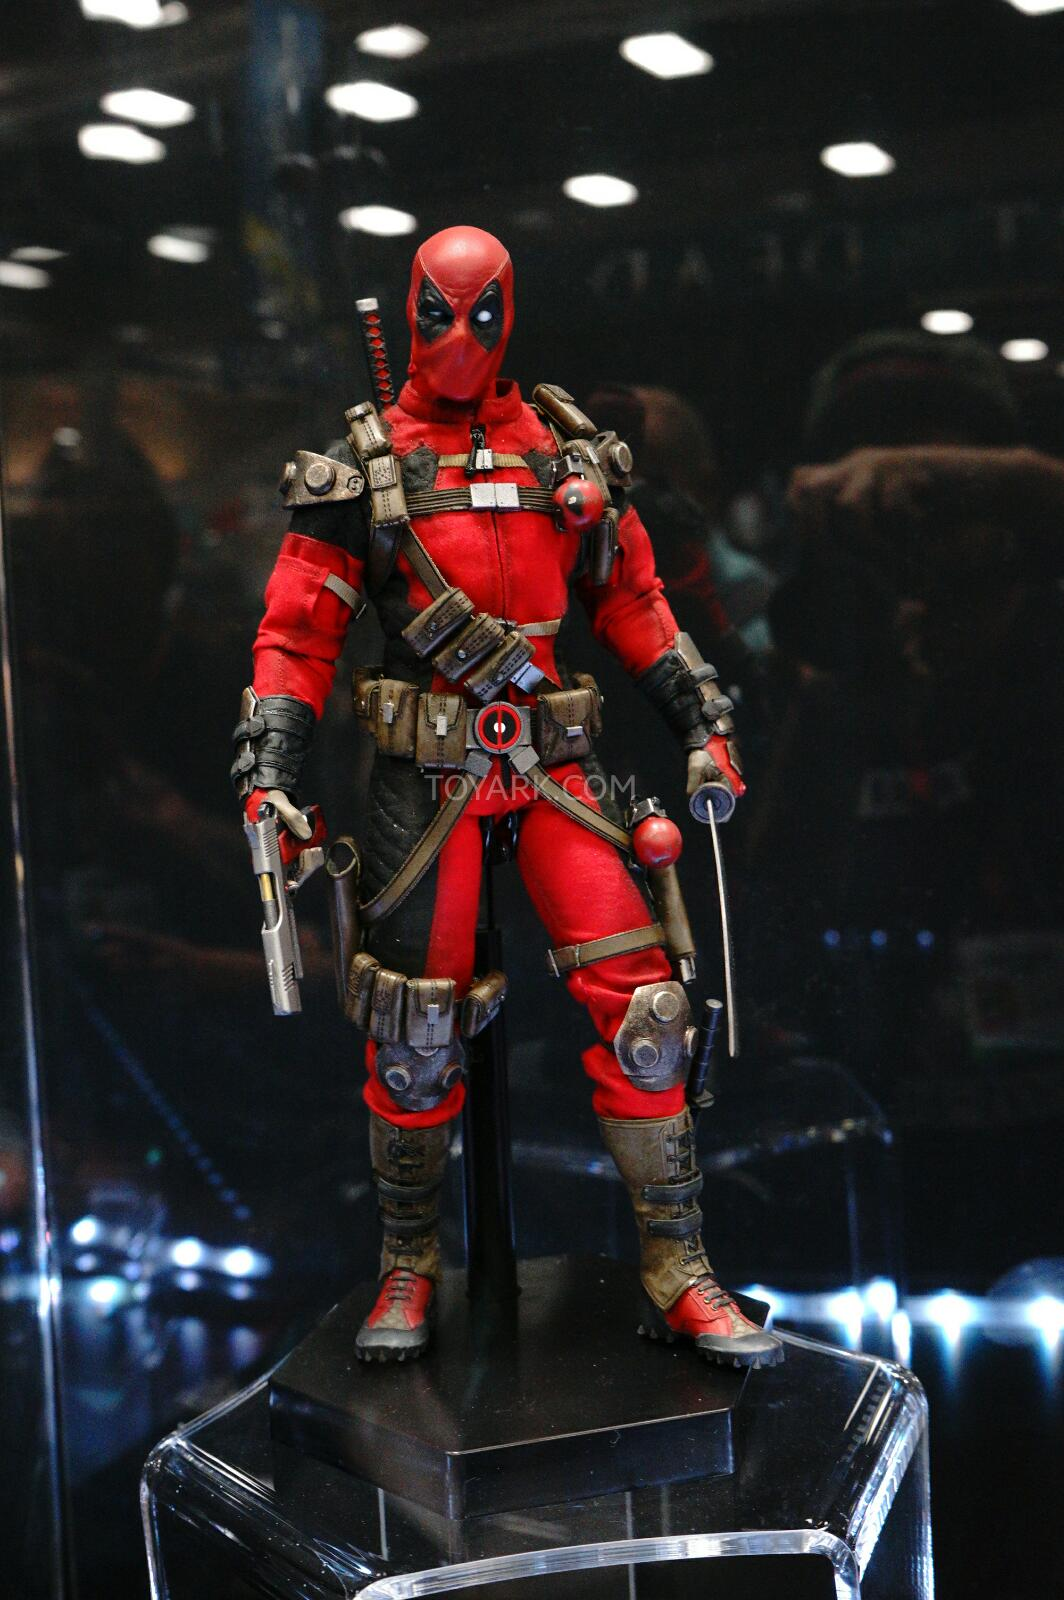 [Sideshow] Marvel Sixth Scale Collection - Deadpool DSC07546